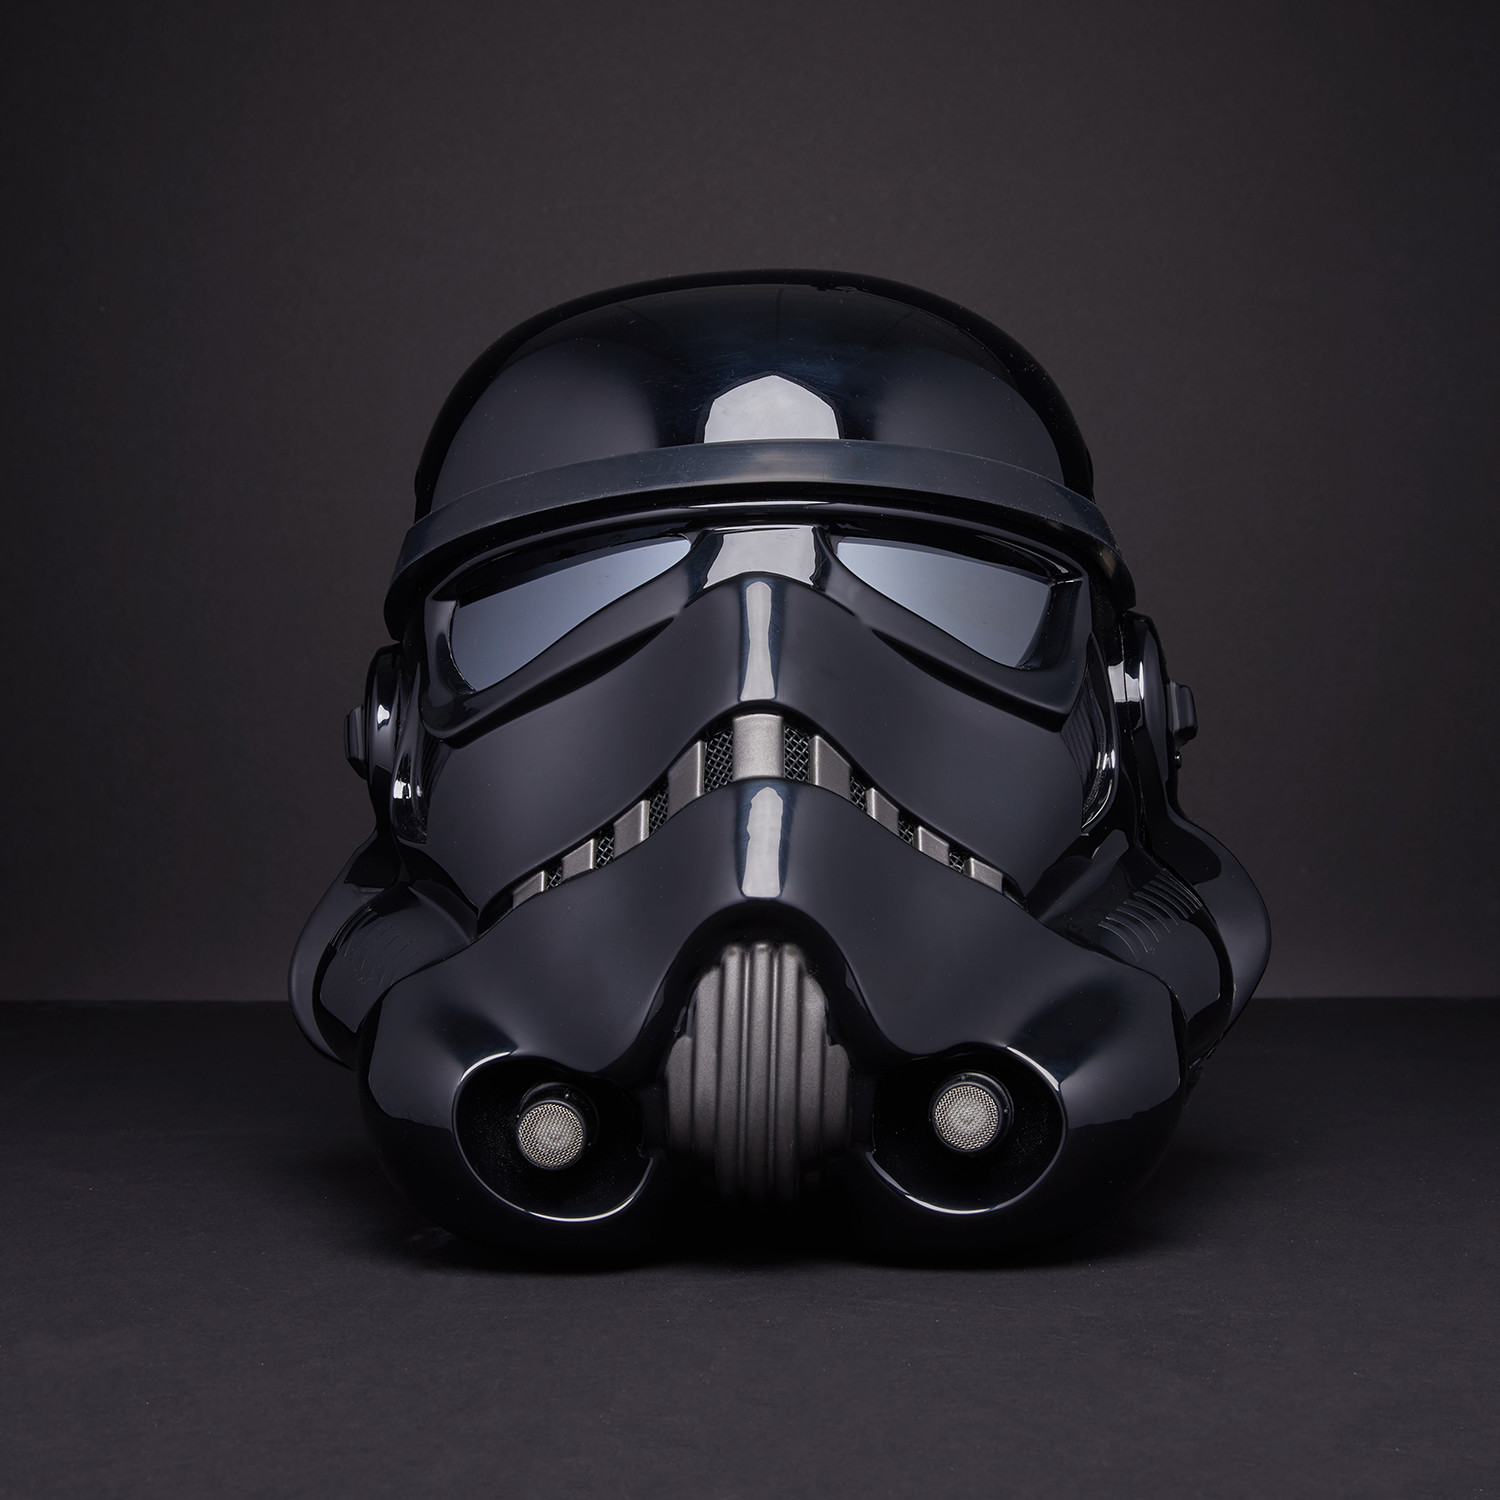 Imperial Shadow Stormtrooper Helmet & Imperial Shadow Stormtrooper Helmet - Anovos - Touch of Modern